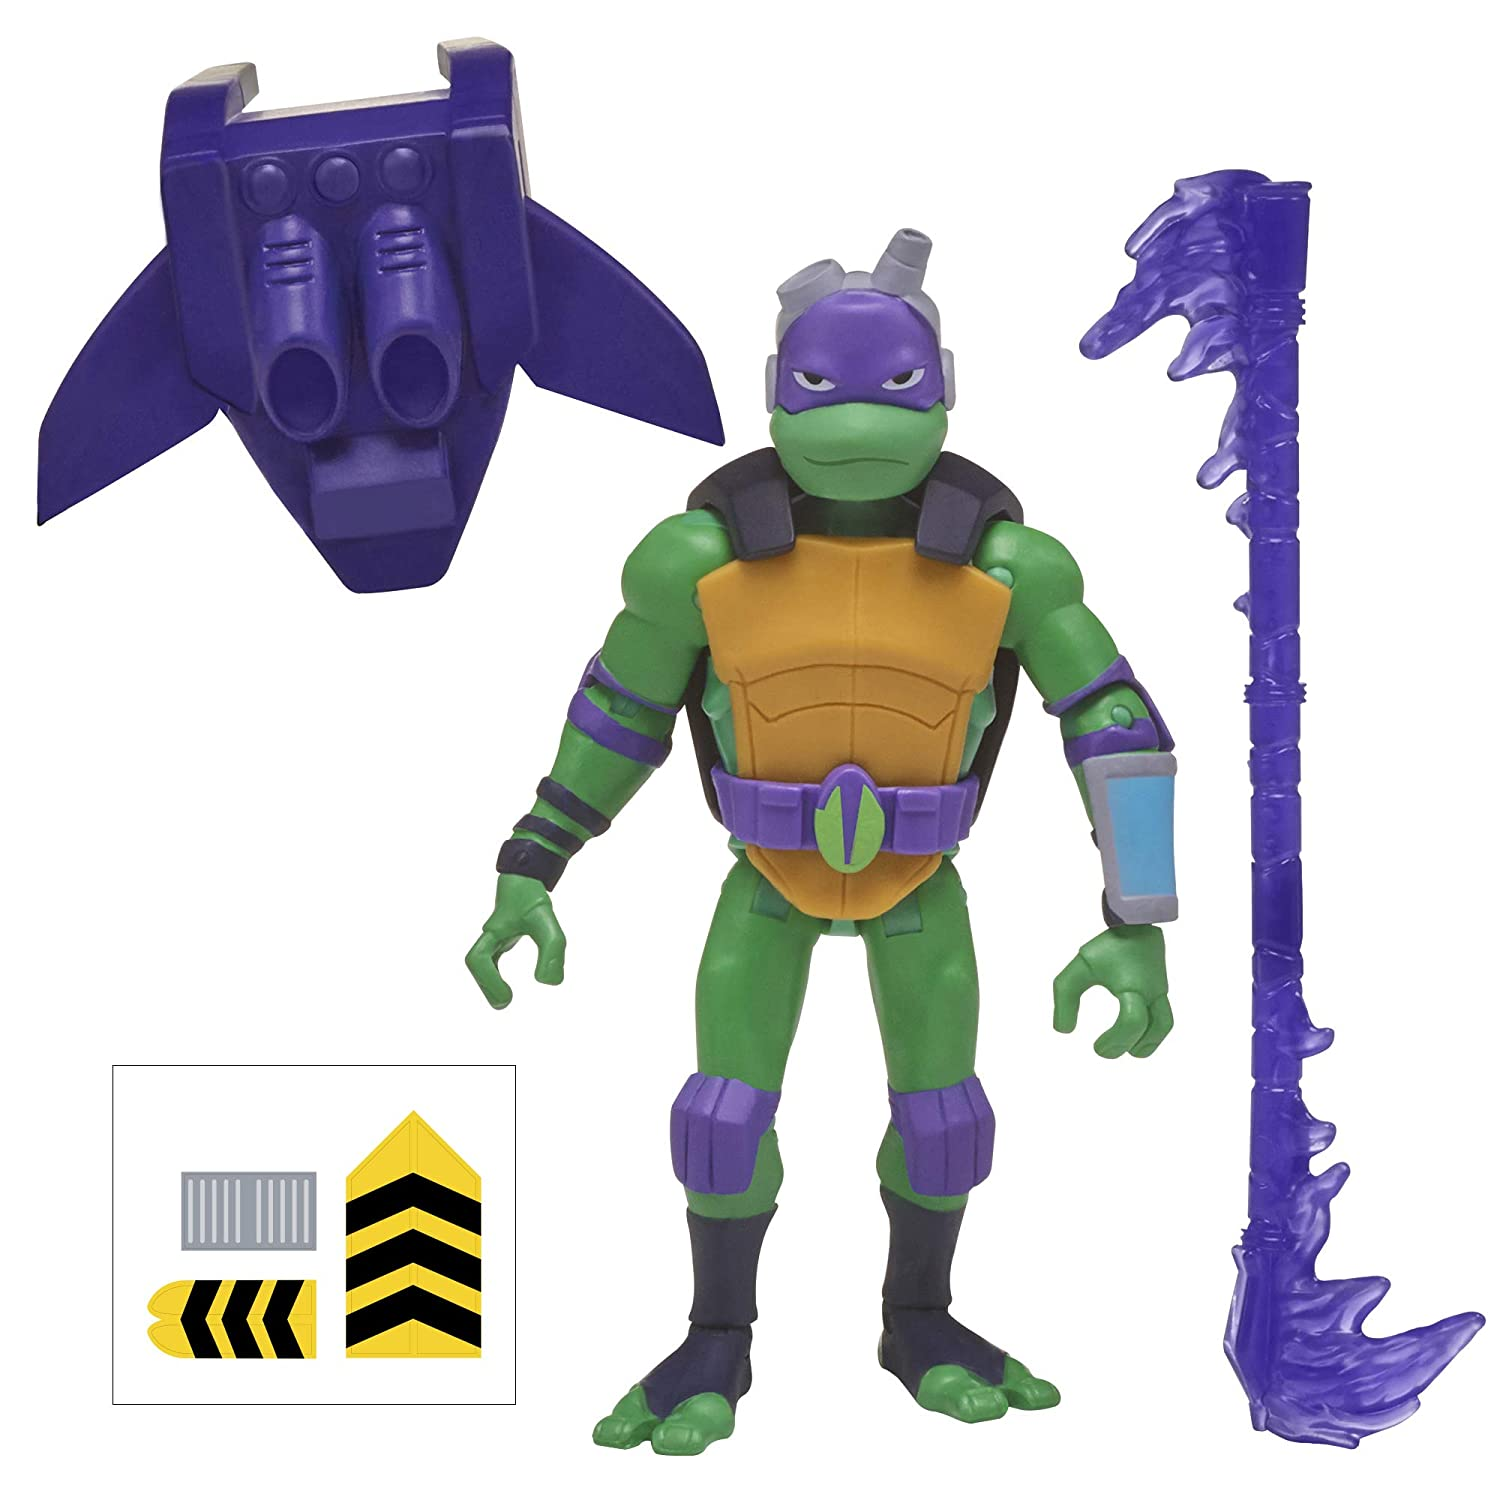 Amazon.com: Rise of the Teenage Mutant Ninja Turtle Jet Pack ...